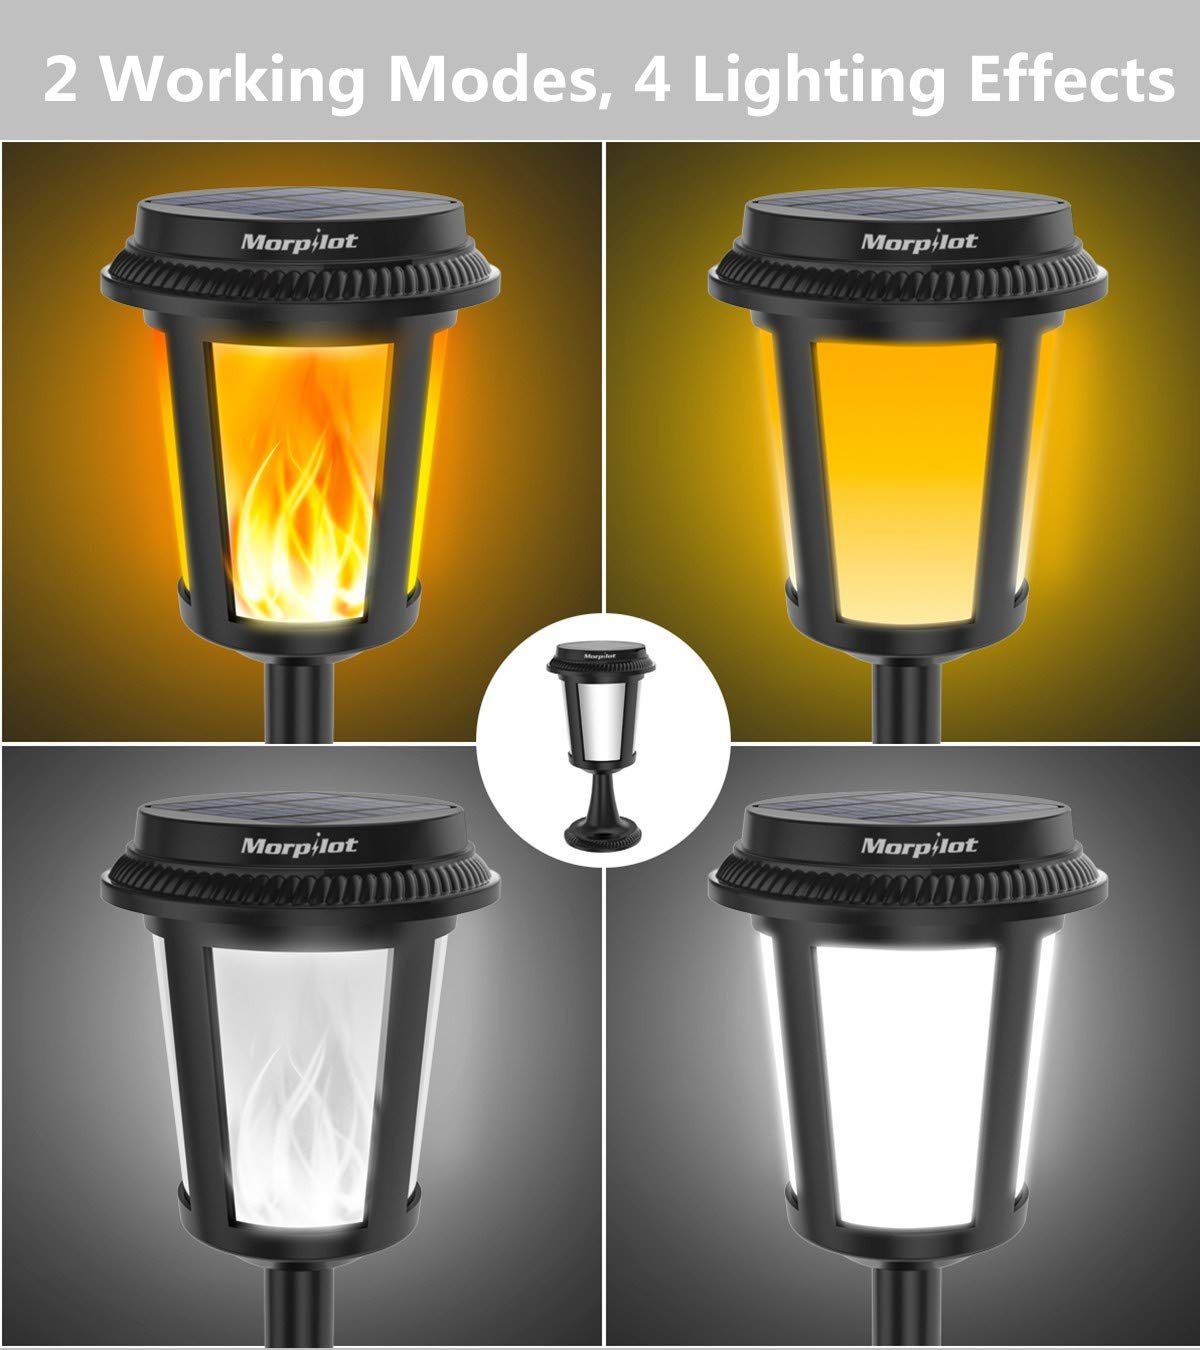 Keenstone 2 in 1 Solar Flame Lights/Flickering Flame Lights, 4 Lighting Effects/IP65 Waterproof/Dusk to Dawn Auto on/Off Lighting, Outdoor Solar Path Light for Christmas Landscape Decoration (1pc)